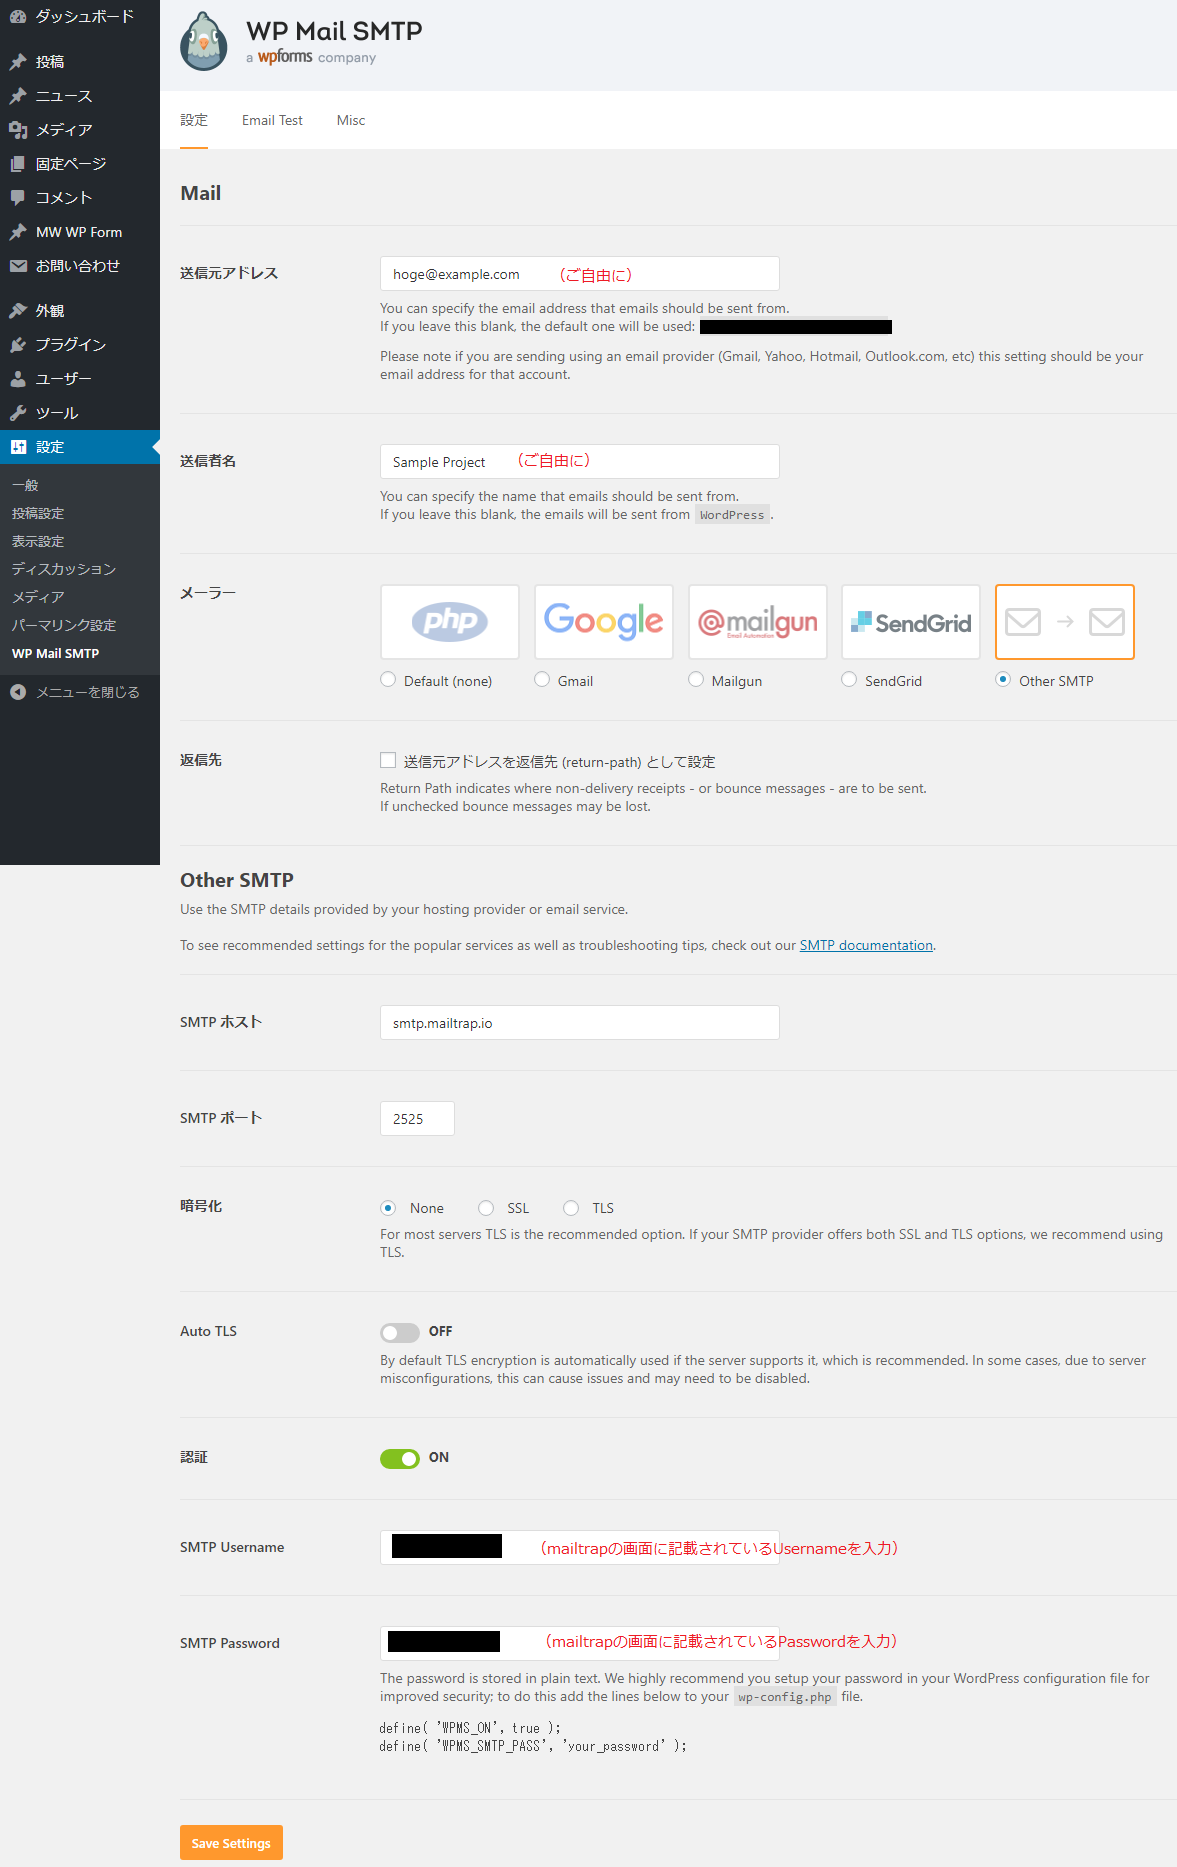 FireShot Capture 55 - WP Mail SMTP Options_ - http___project-name.wp_wp_wp-admin_options-general.php.png